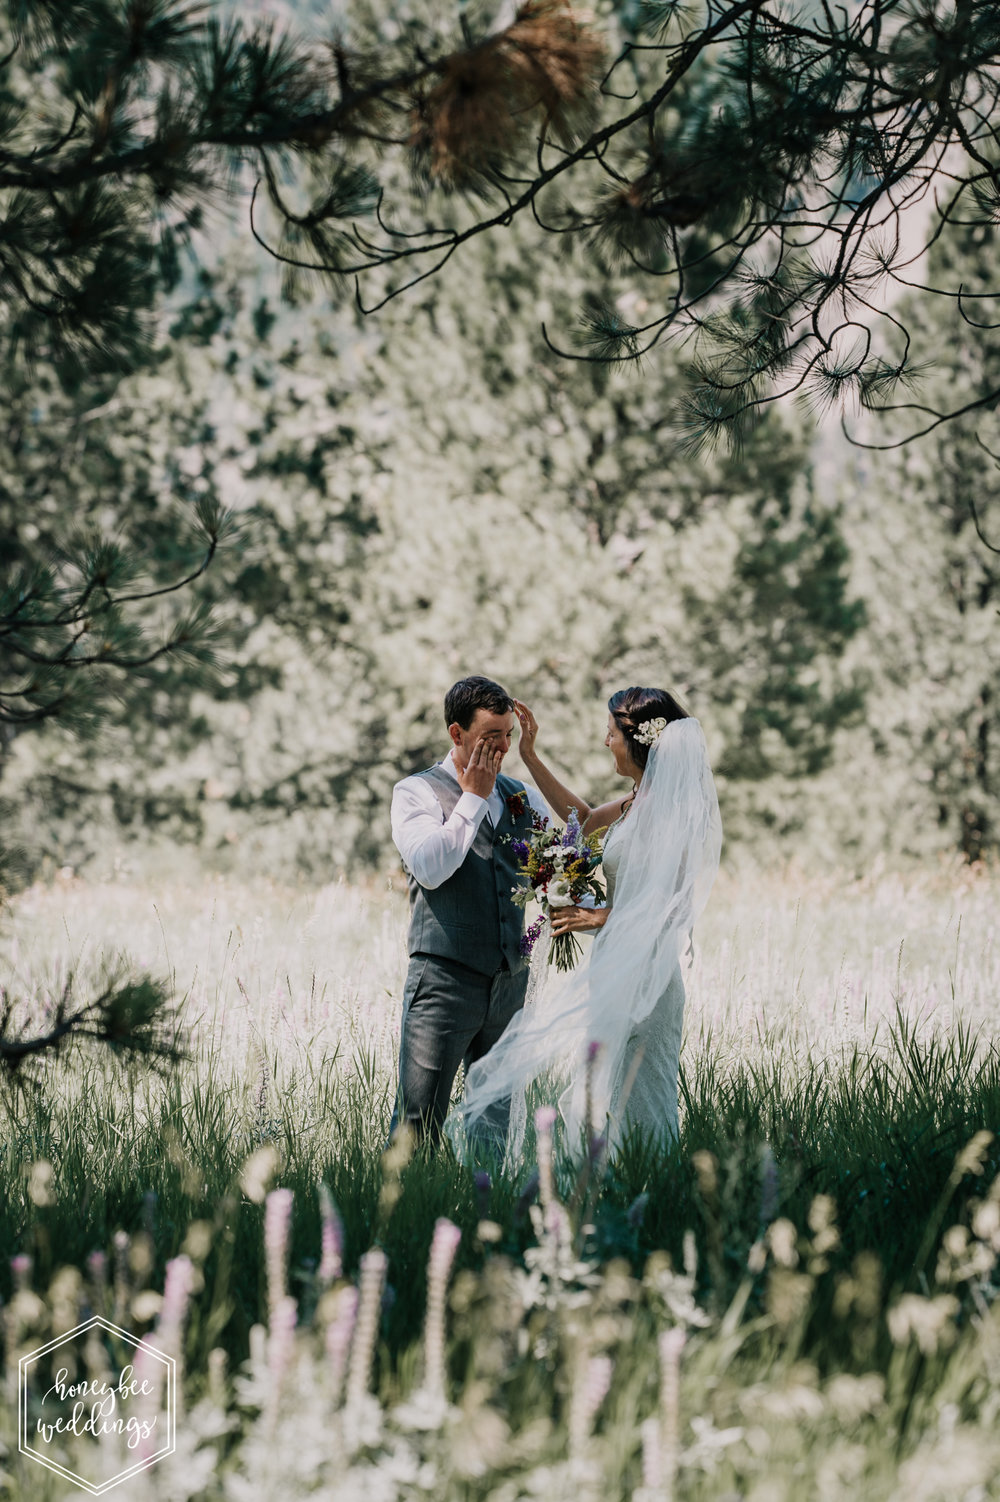 75 White Raven Wedding_Montana Wedding Photographer_Honeybee Weddings_ Meghan Maloney + Arza Hammond 2018-8336.jpg